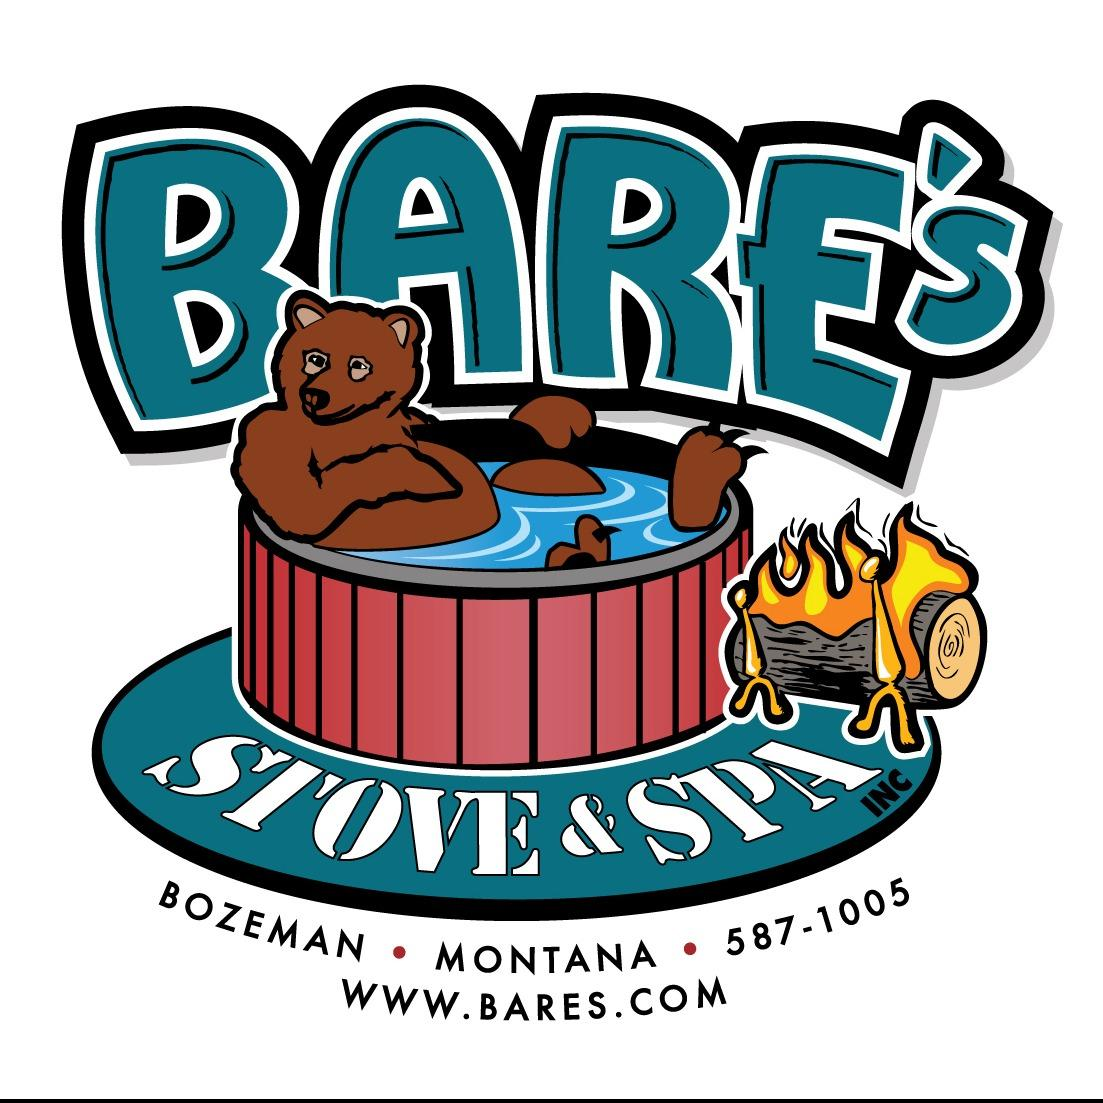 Bare's Stove & Spa image 20